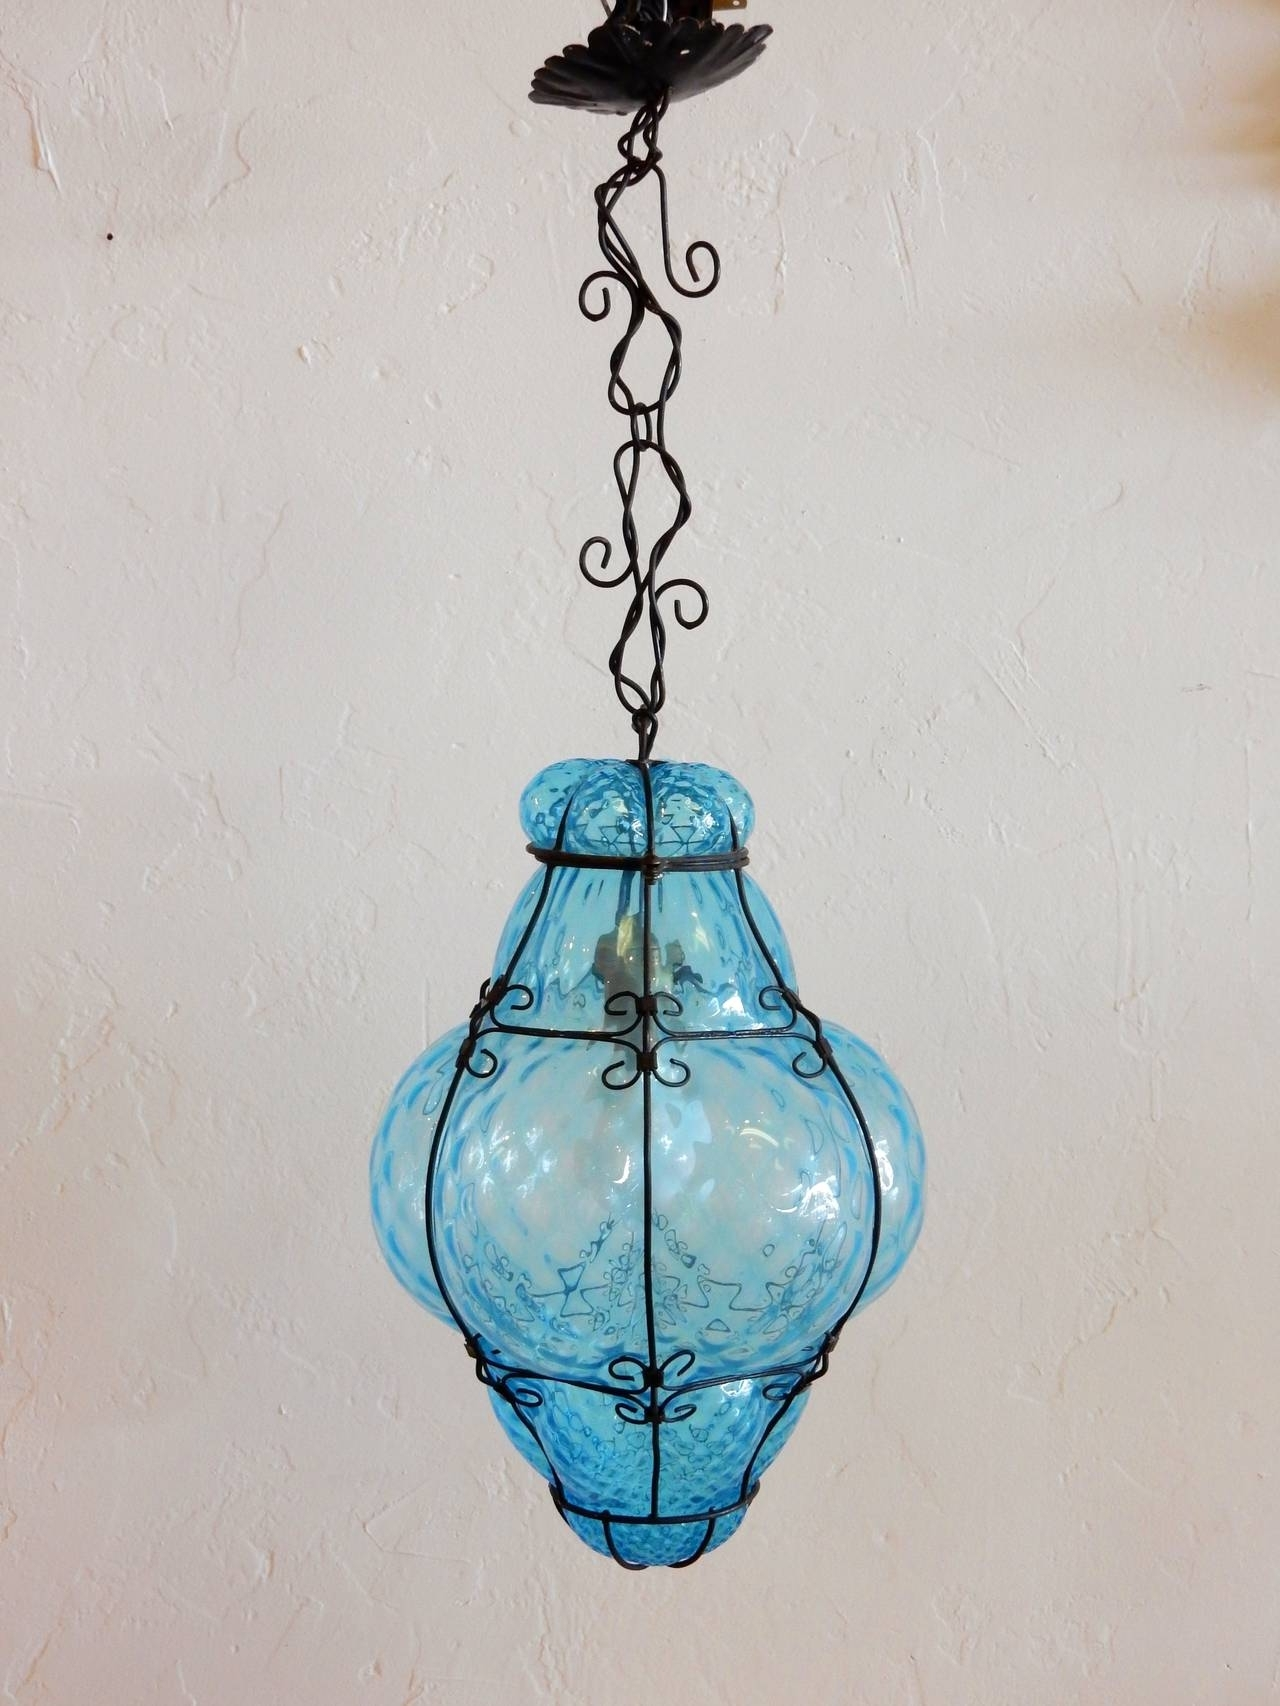 Well Liked Italian Cage Art Glass Pendant Lampseugso In Aqua Blue At 1stdibs In Turquoise Blown Glass Chandeliers (View 7 of 20)